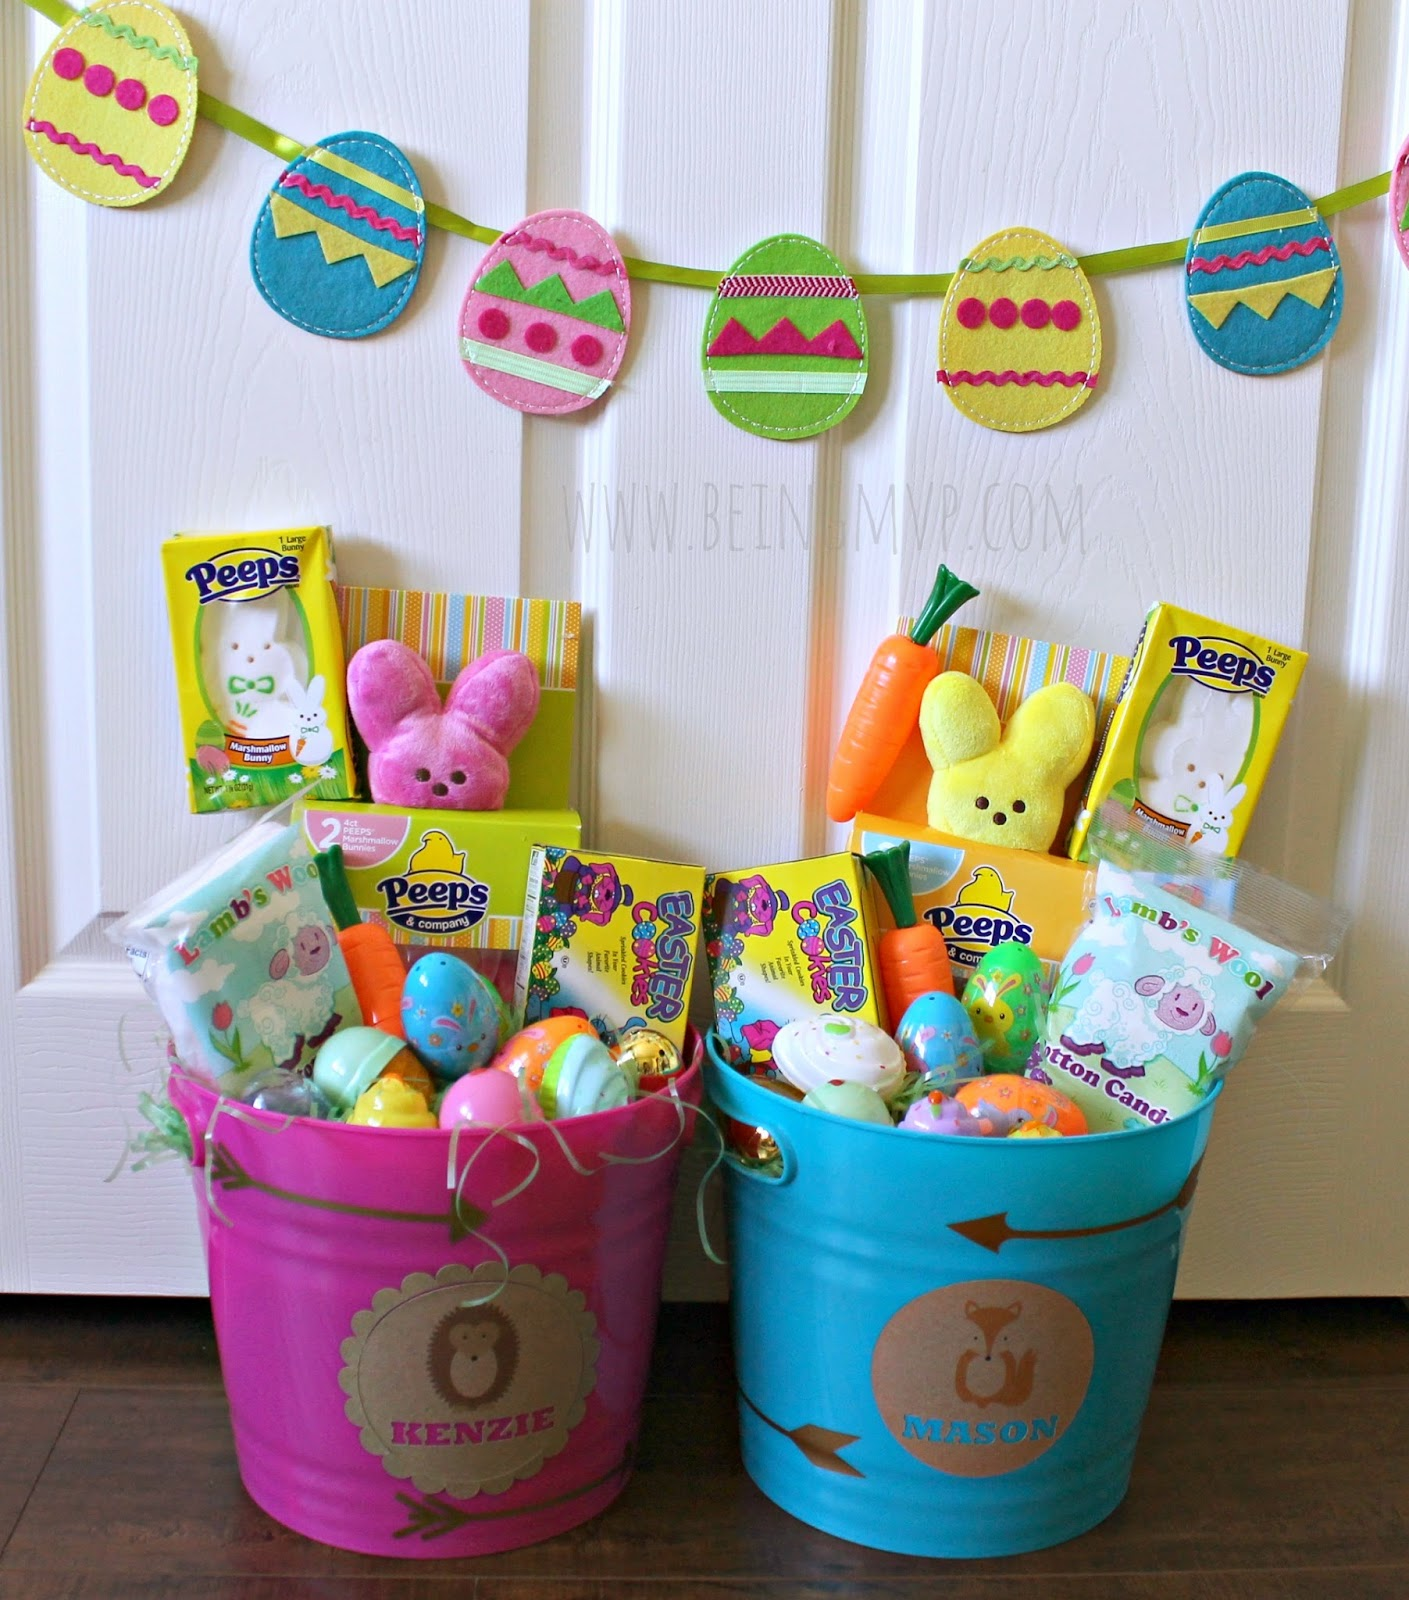 Being mvp easter basket ideas for little kids orientaltrading easter basket ideas for little kids orientaltrading negle Image collections